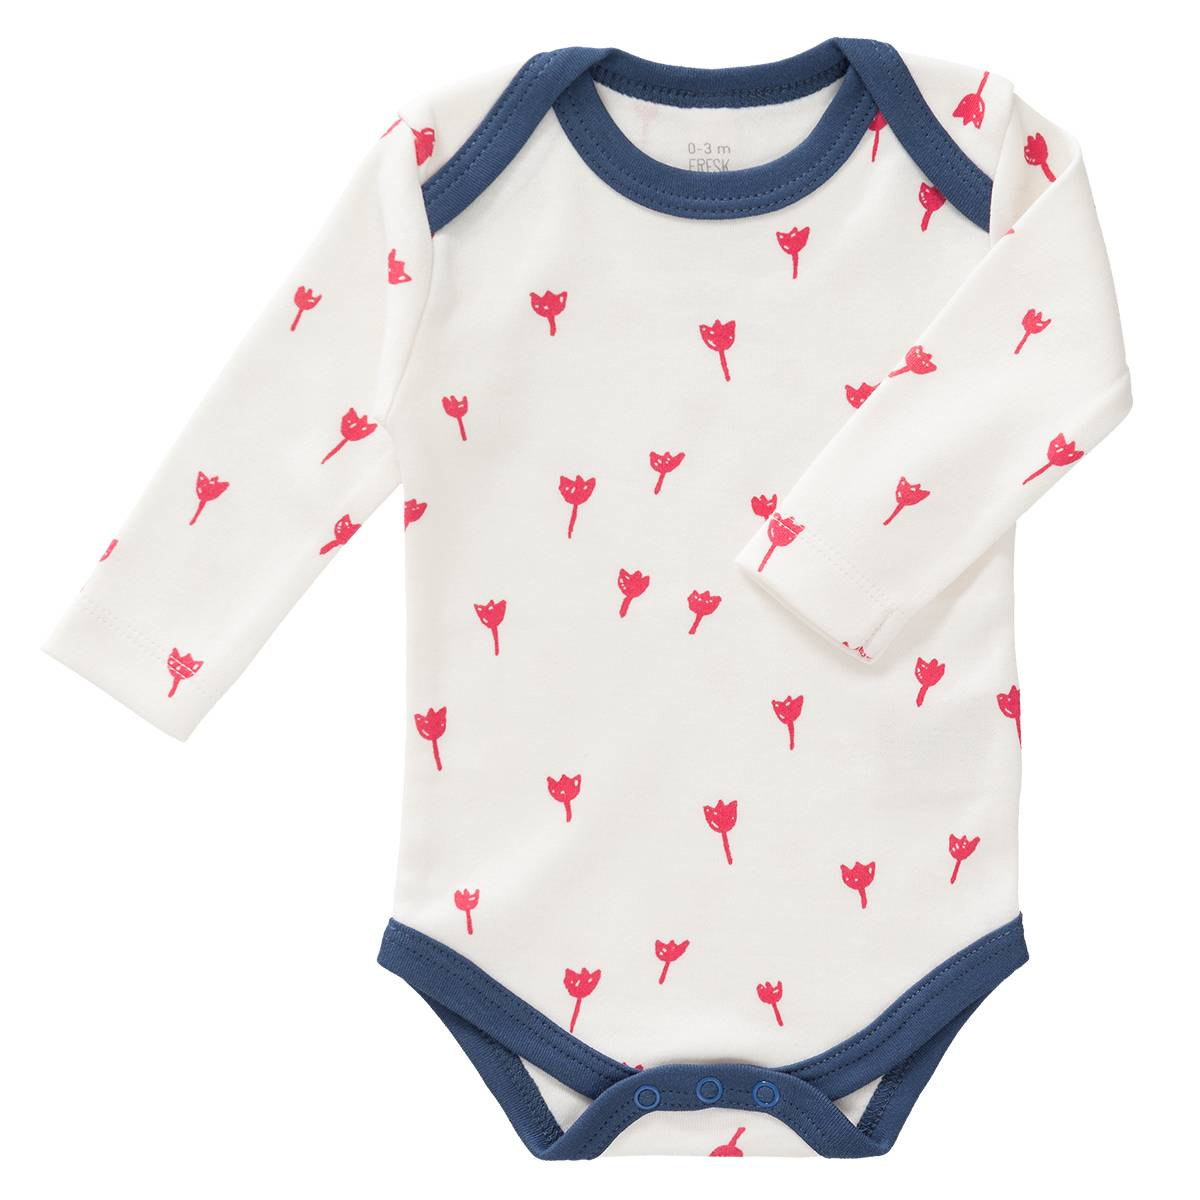 Fresk Body Manches Longues Tulipes Rouges - 3/6 Mois